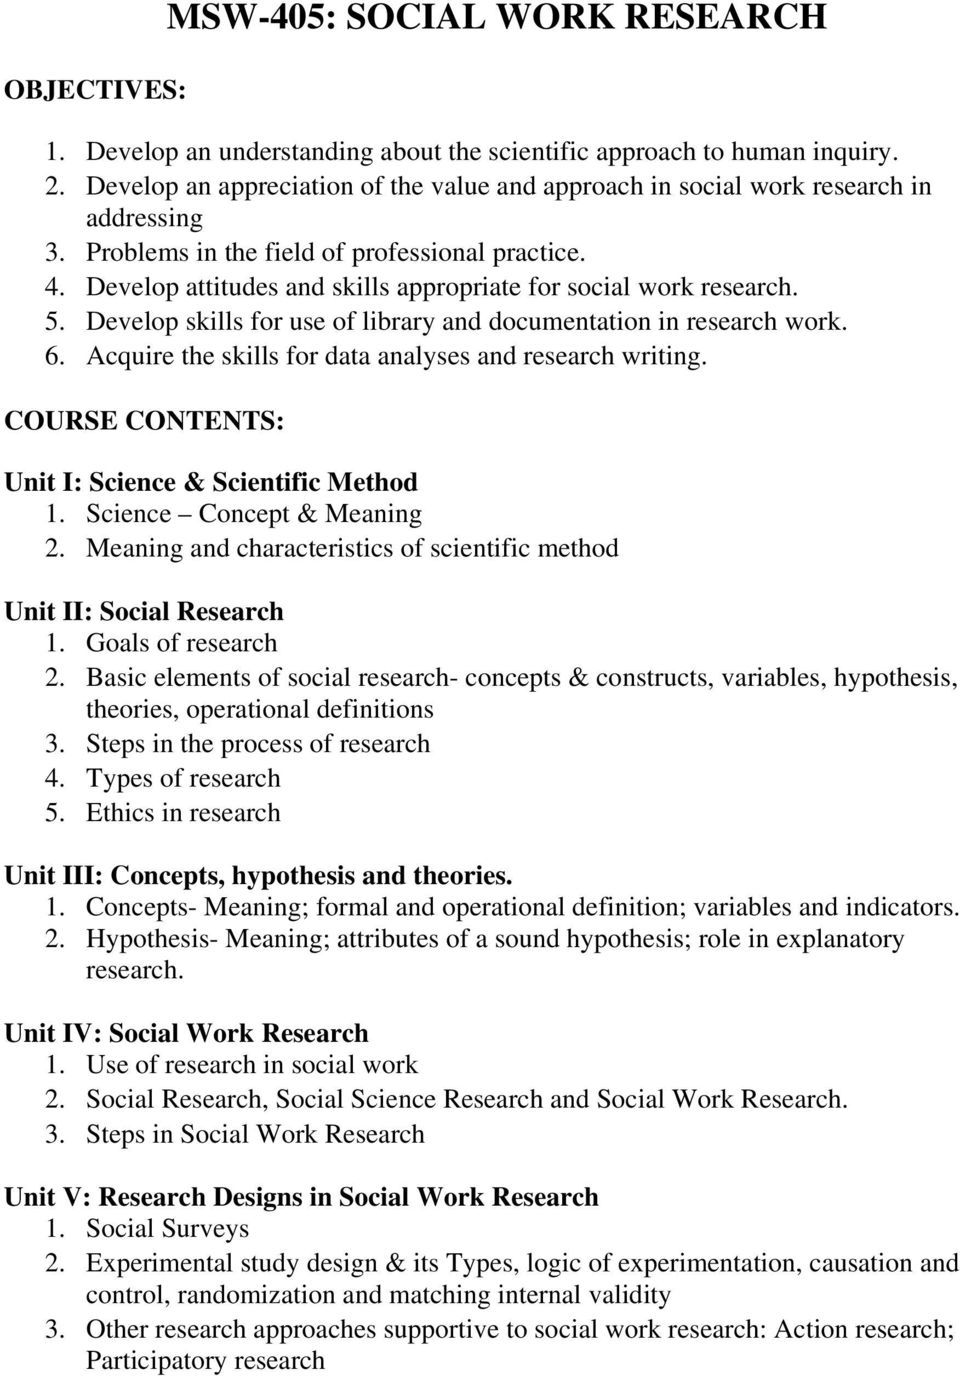 meaning of social science research